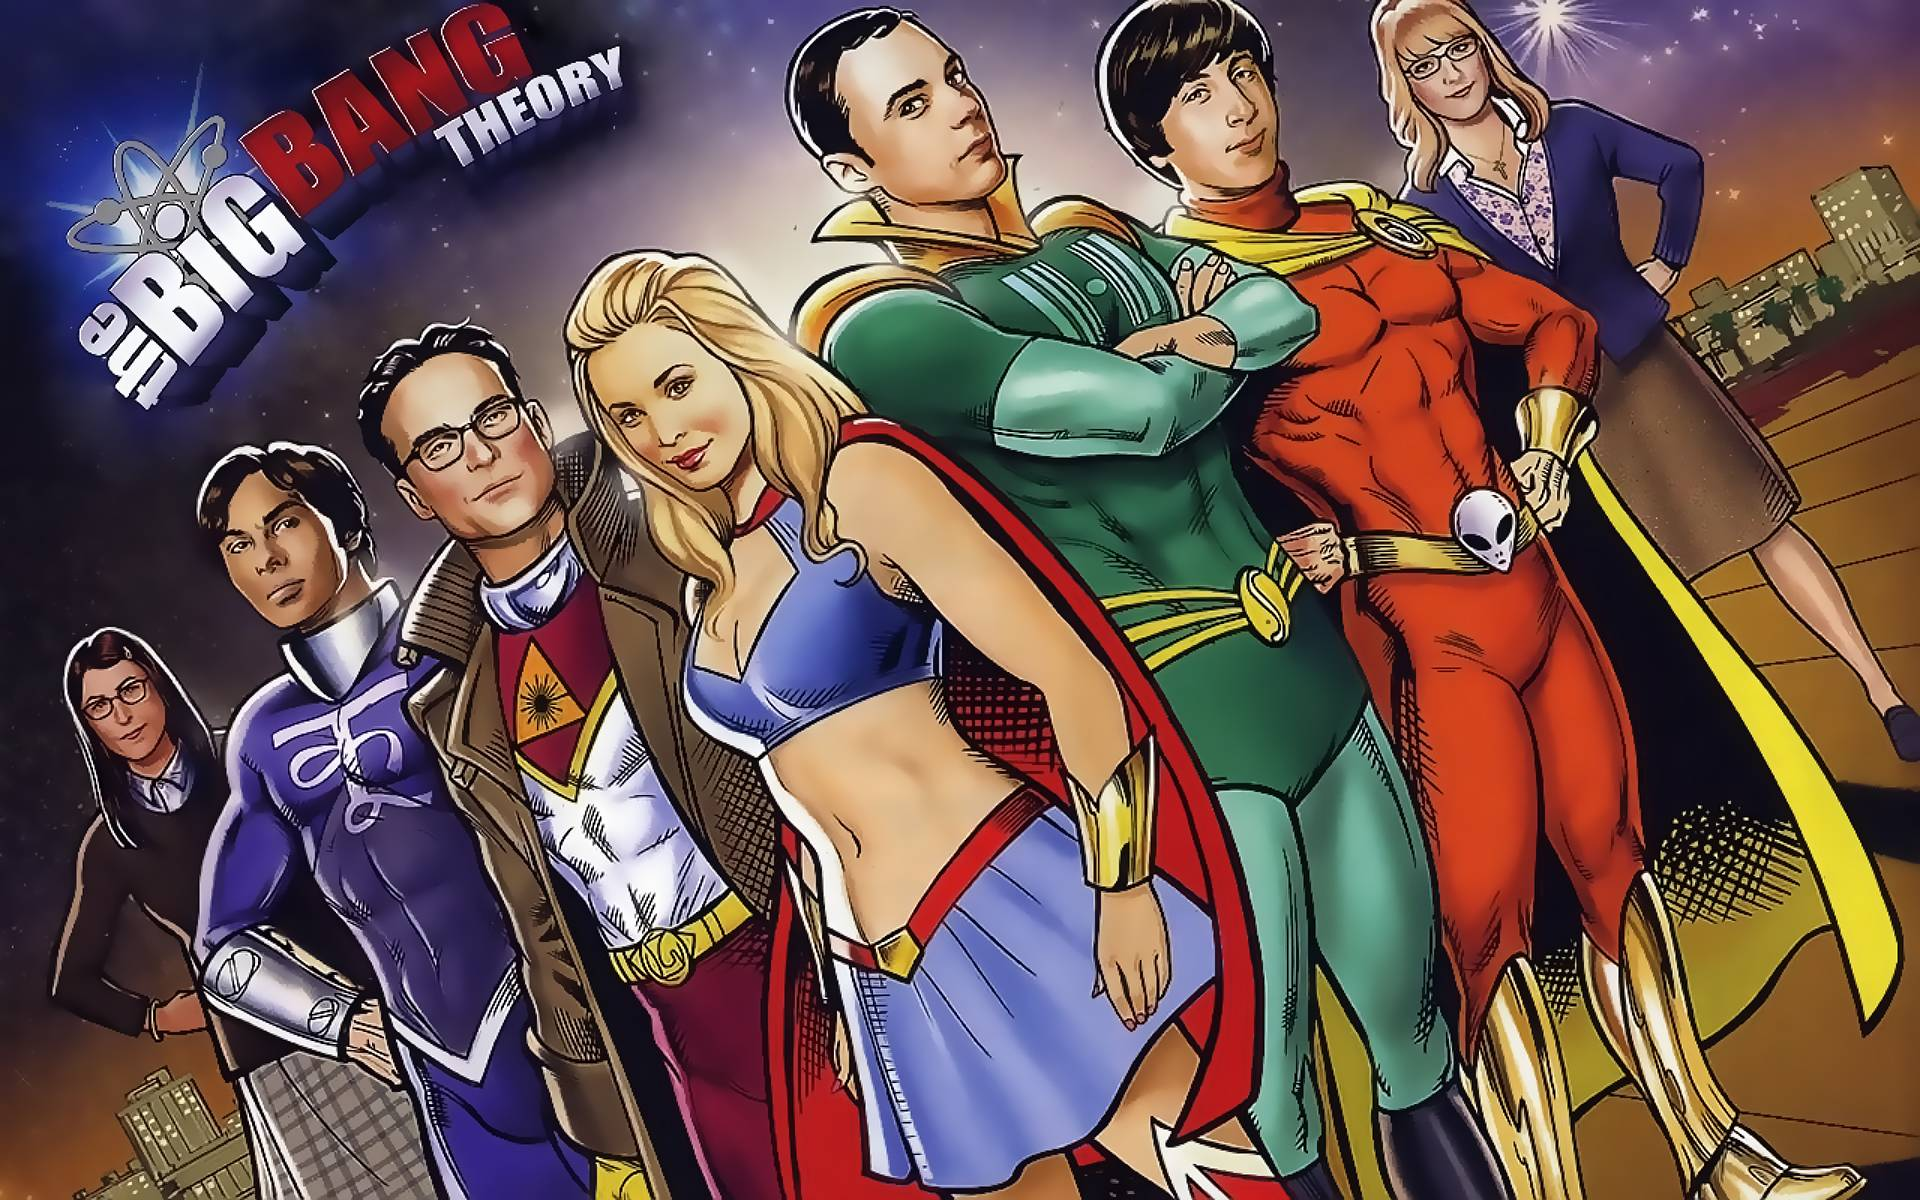 The Big Bang Theory 5 HD wallpapers - Movie Wallpapers